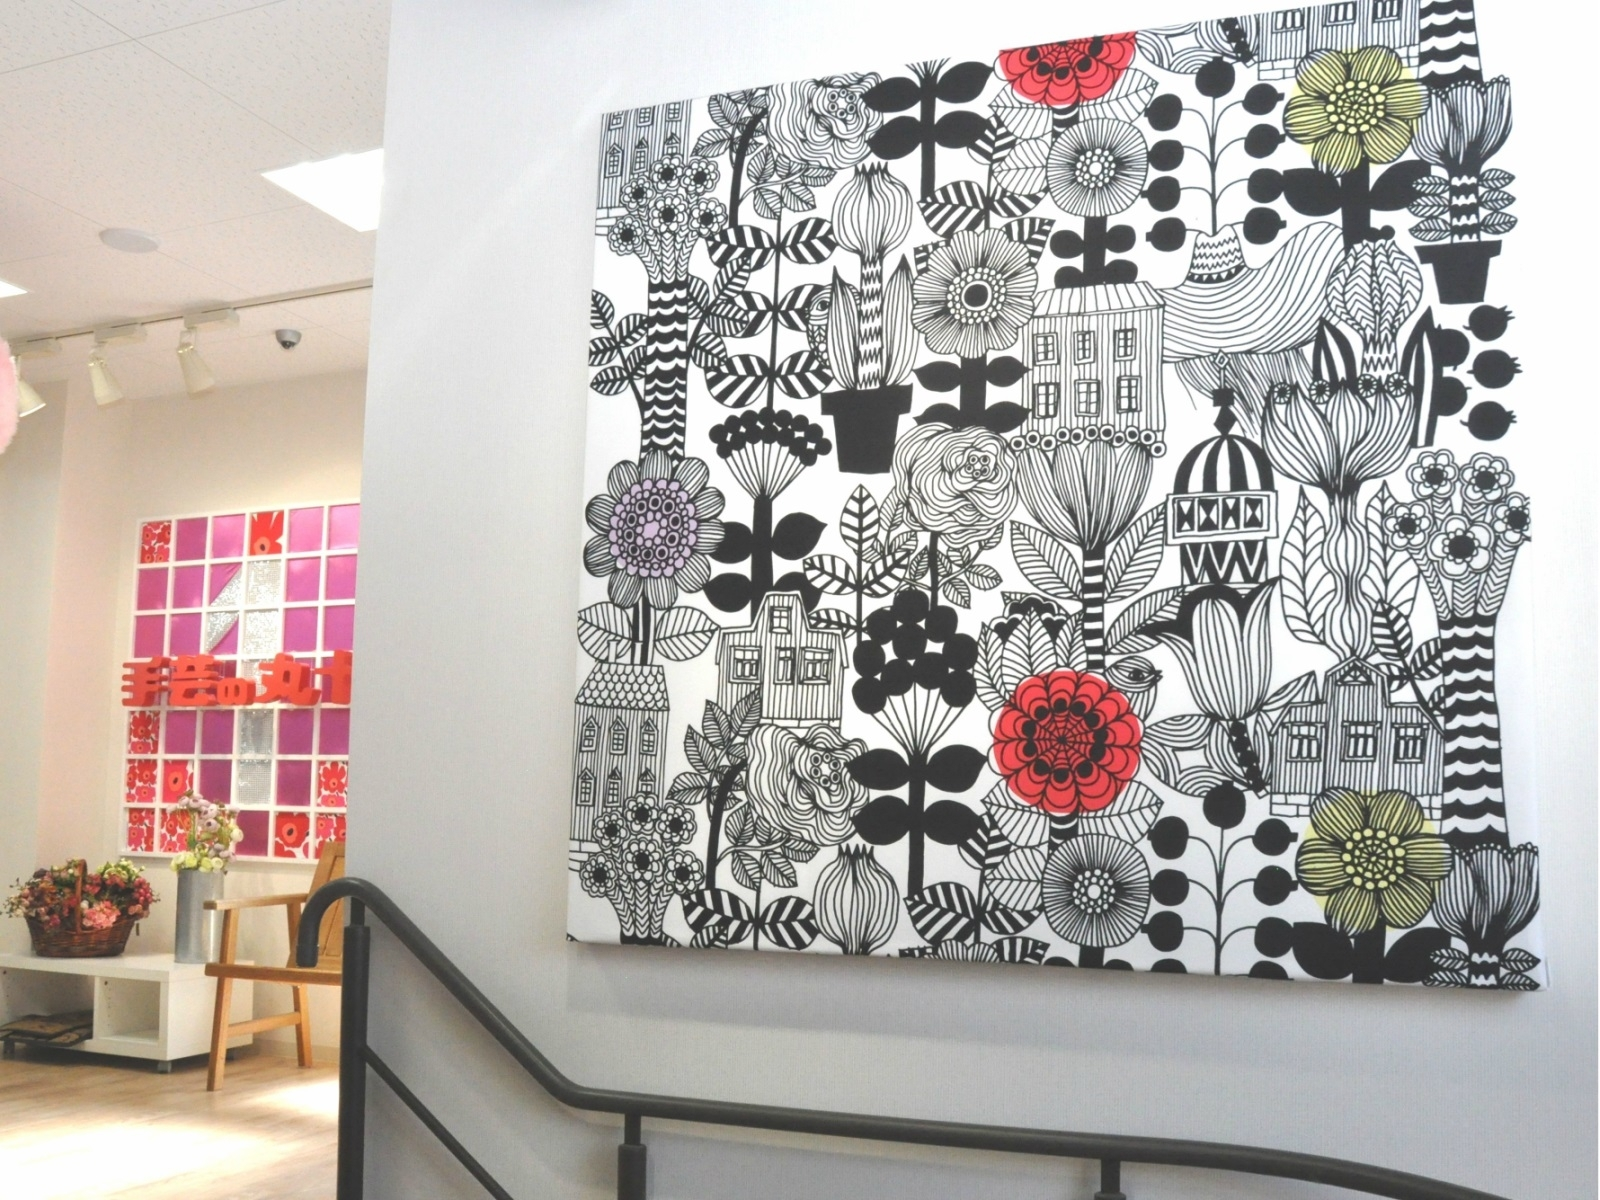 Maru–Jyu | Rakuten Global Market: Scandinavian Fabric And Inside Recent Scandinavian Fabric Wall Art (Gallery 5 of 15)